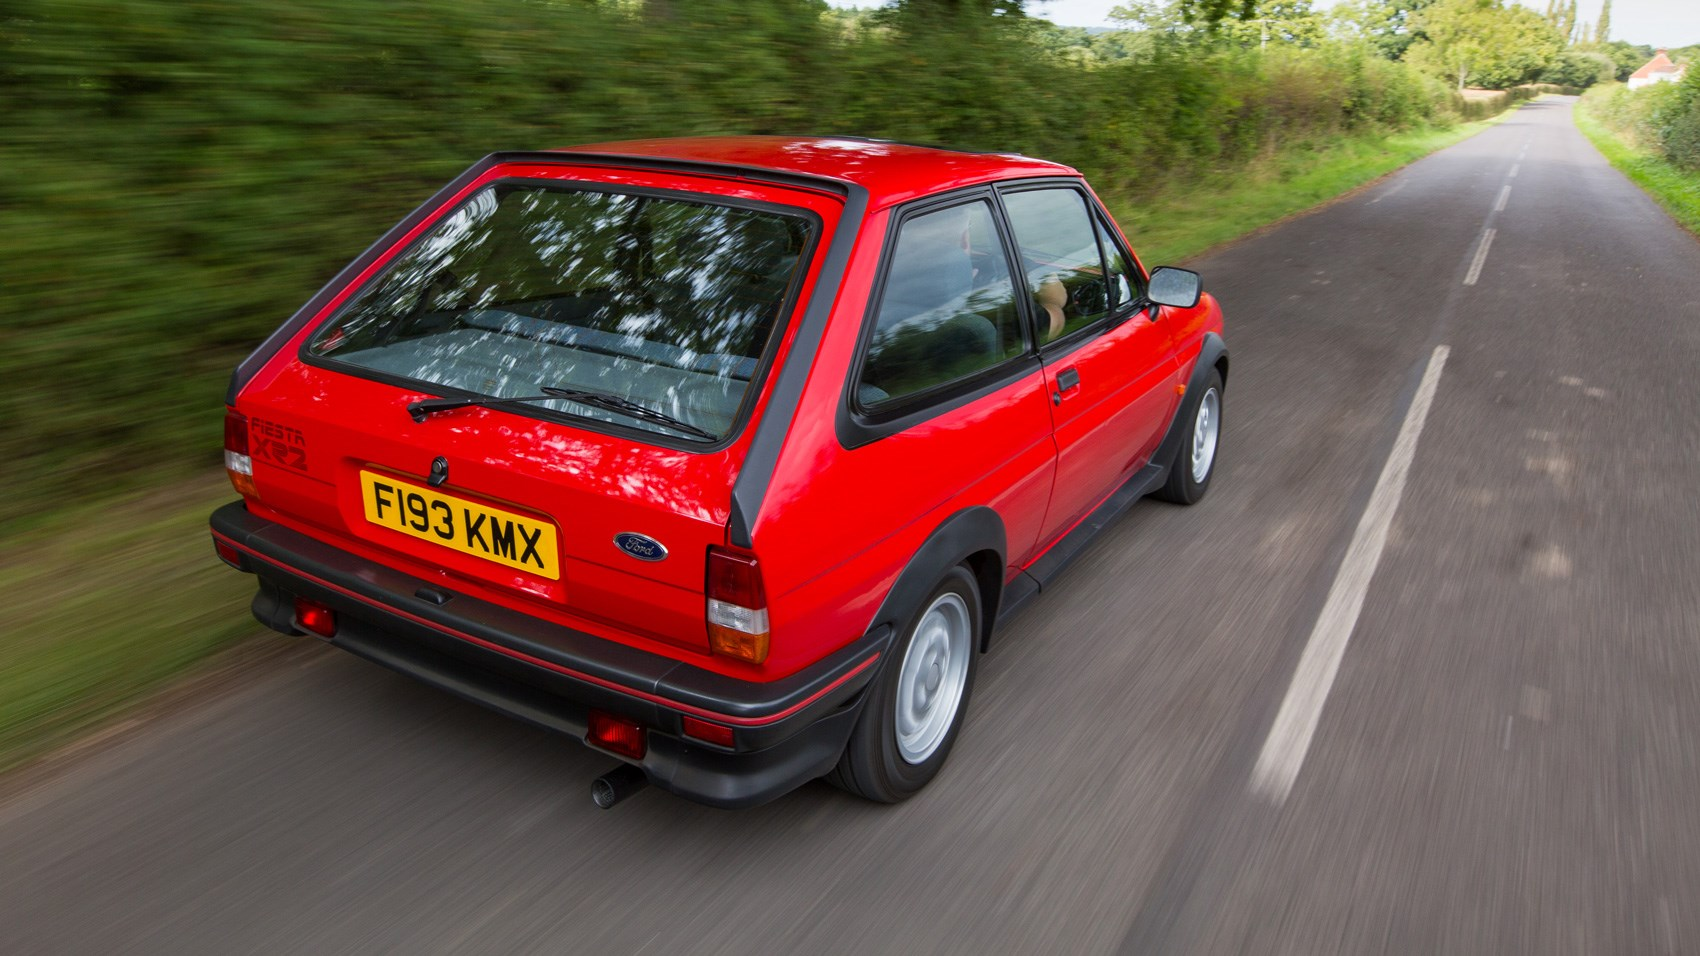 driving the classics ford fiesta xr2 1989 review car. Black Bedroom Furniture Sets. Home Design Ideas